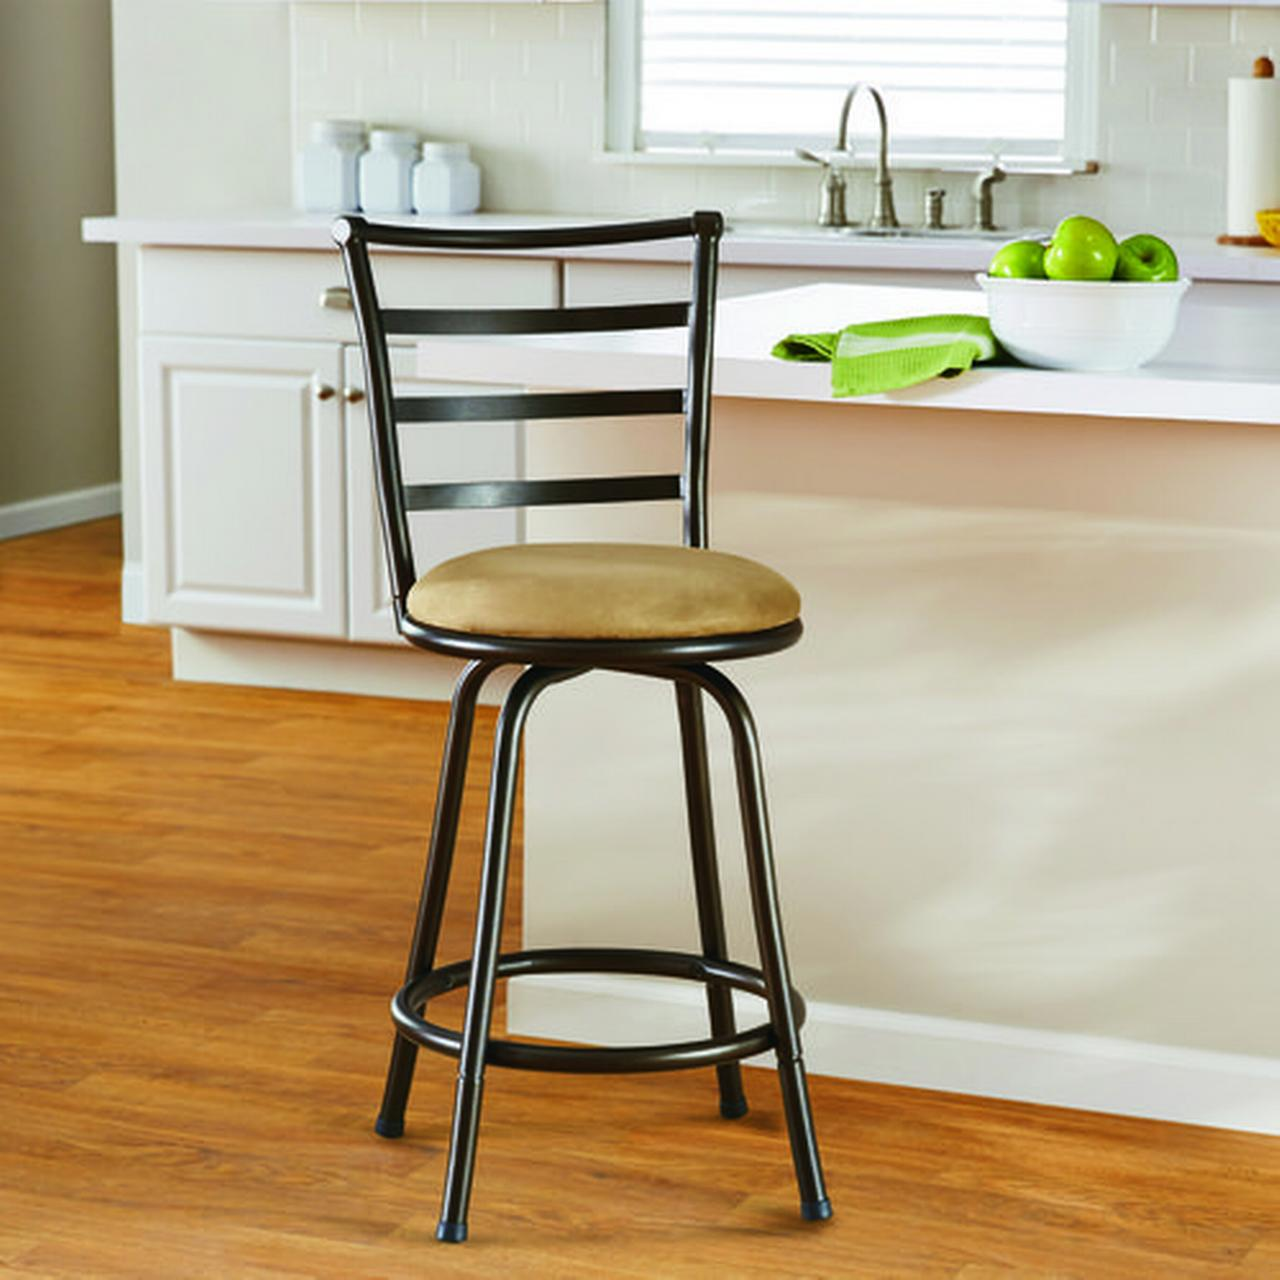 Mainstays 24  Ladder Back Swivel Barstool with Tan Microfiber Seat Cushion : swivel stools - islam-shia.org